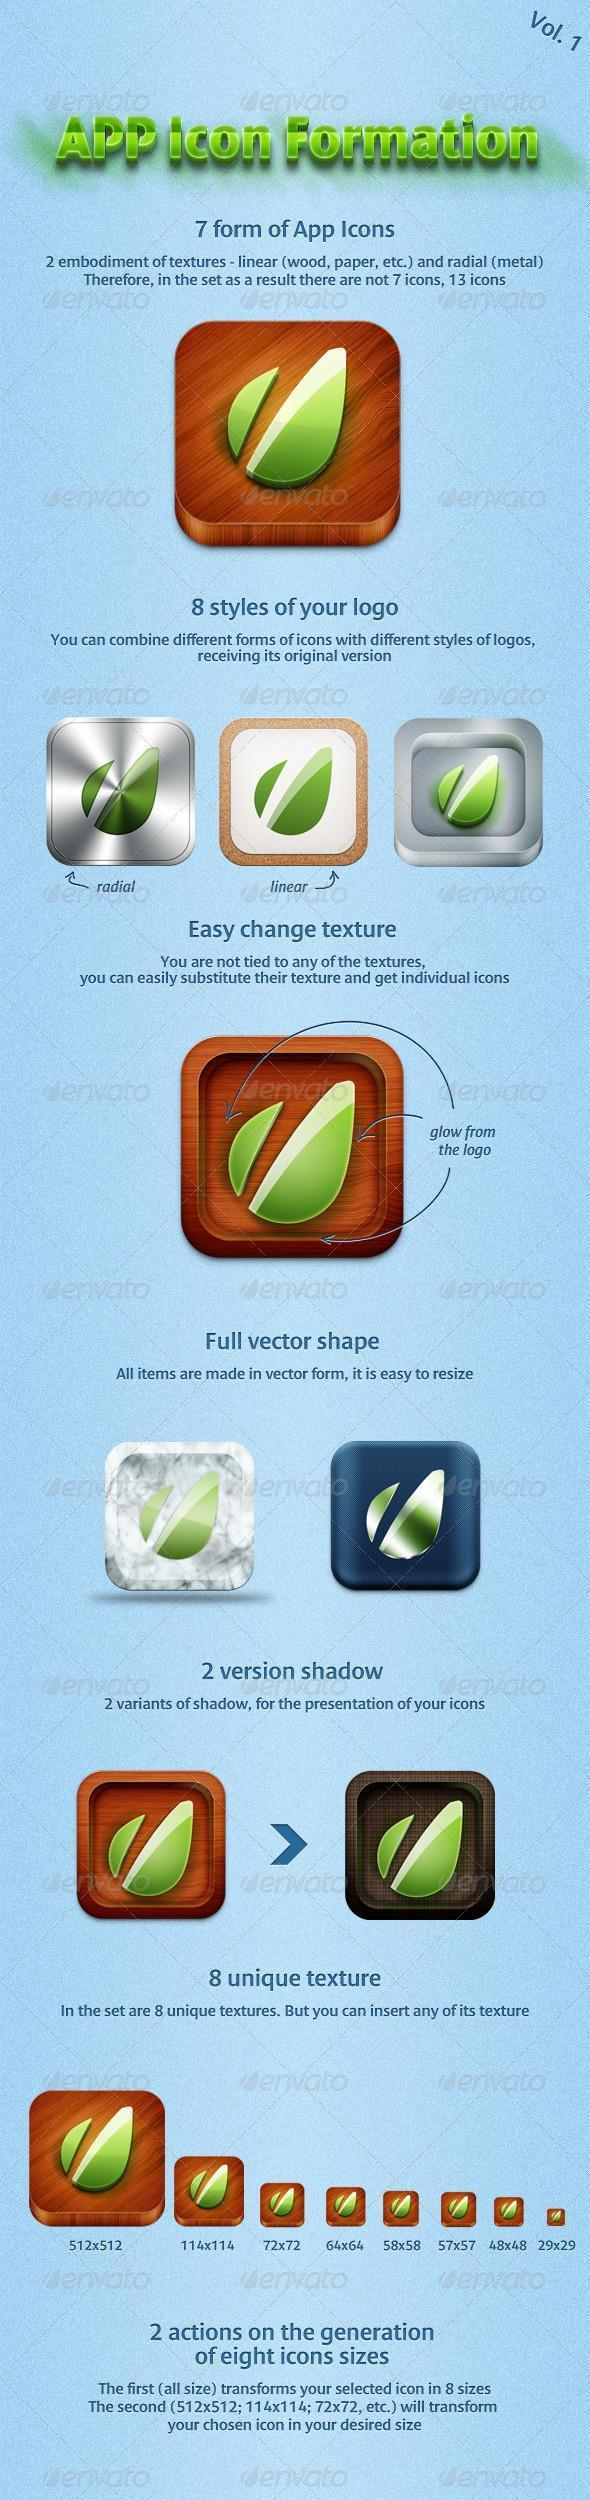 Android and IOS App Icon with PSD Files | PSDDude